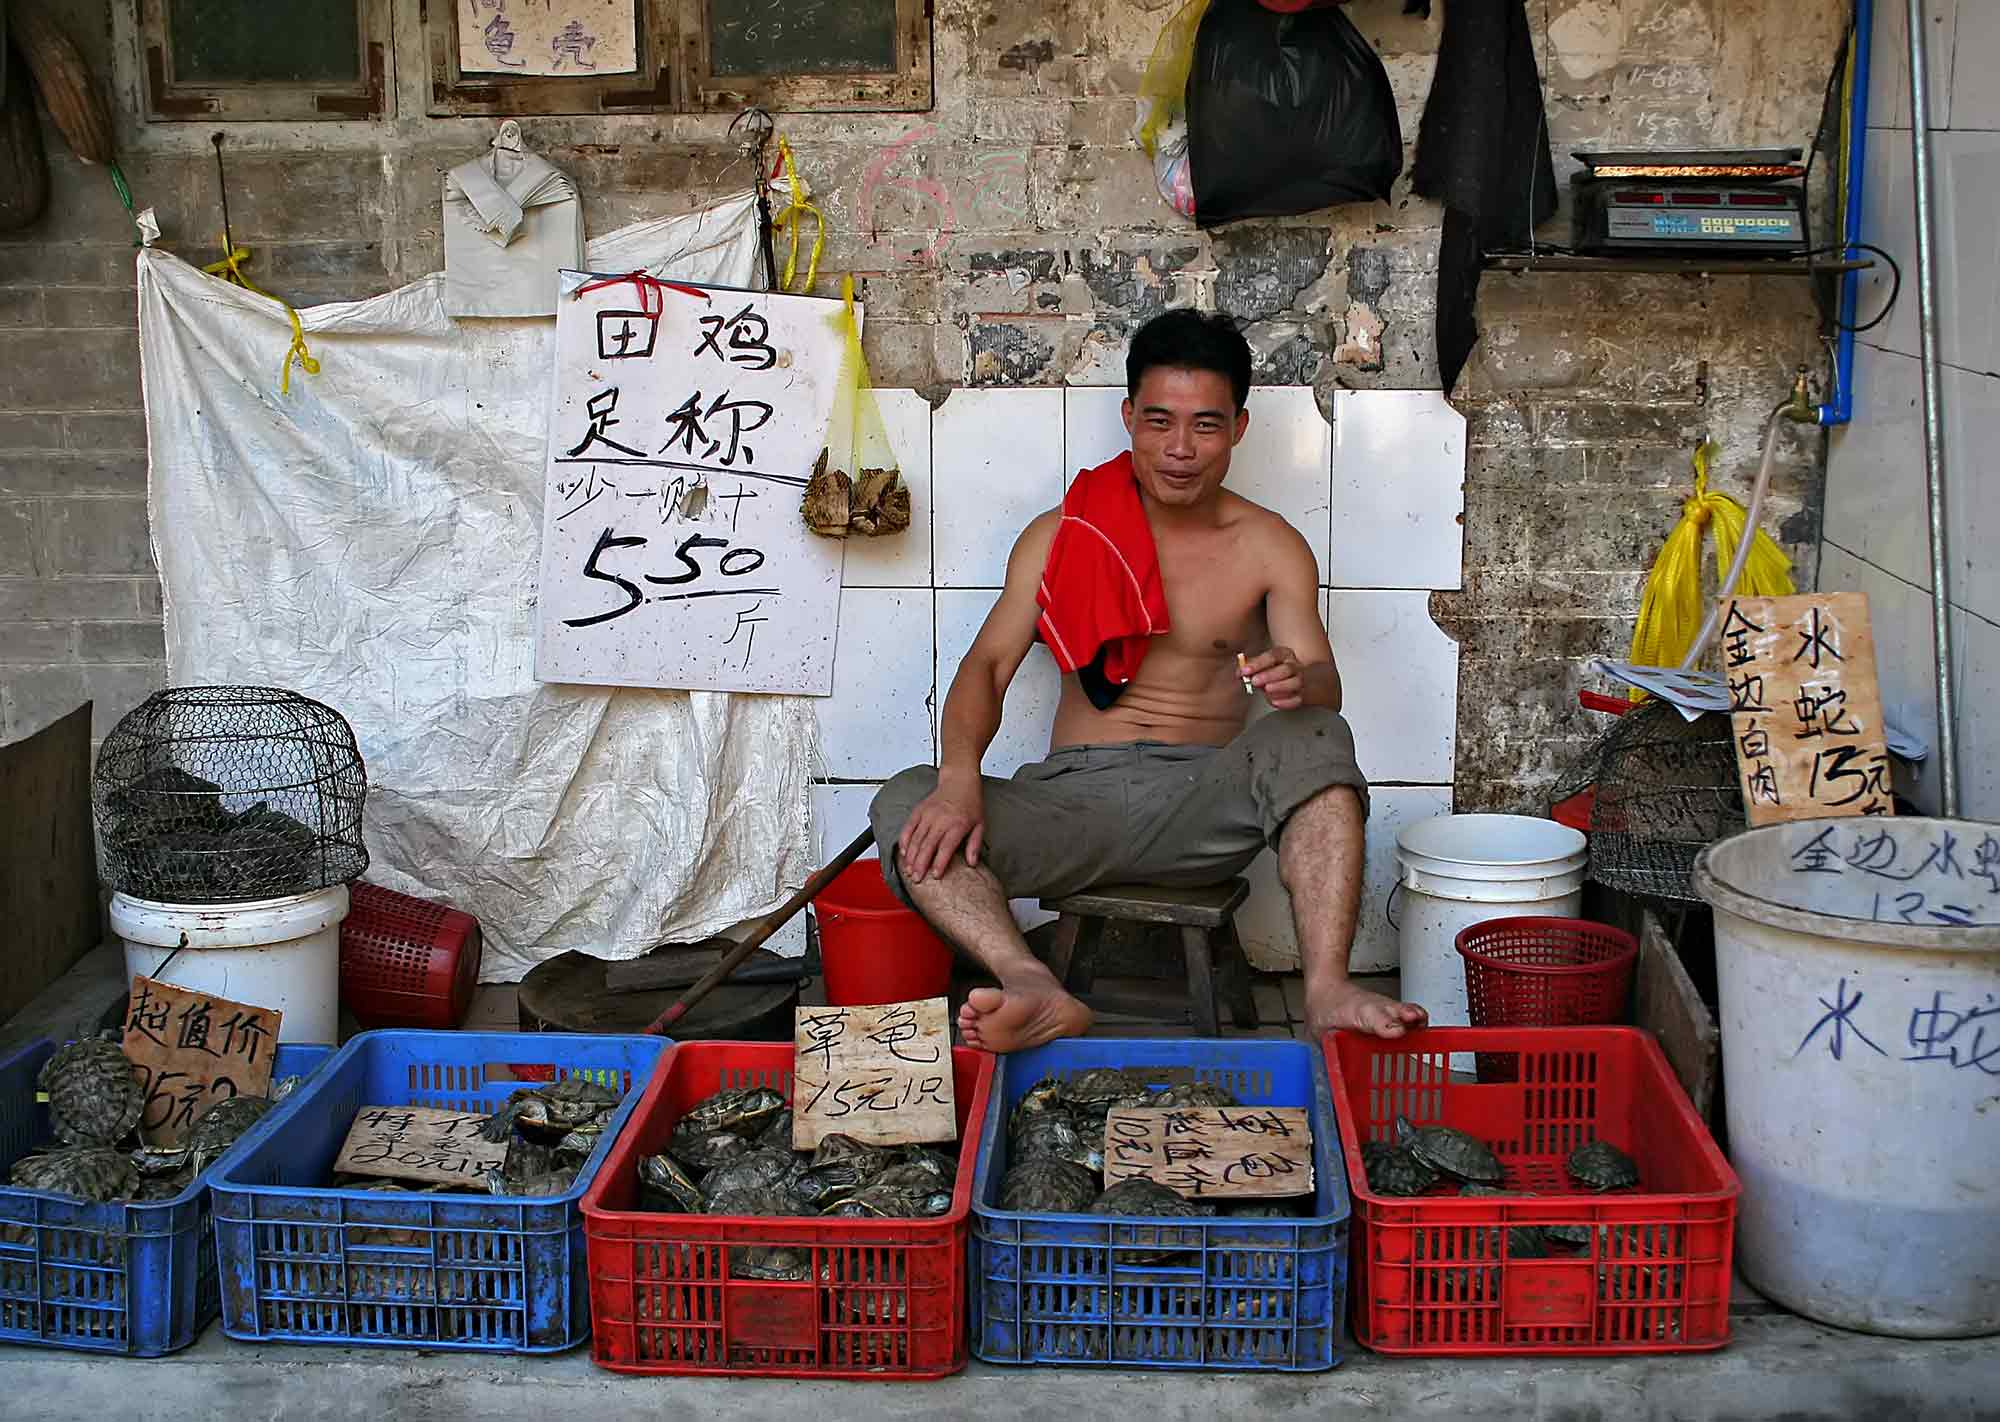 A turtle seller in Guangzhou, China. © Ulli Maier & Nisa Maier